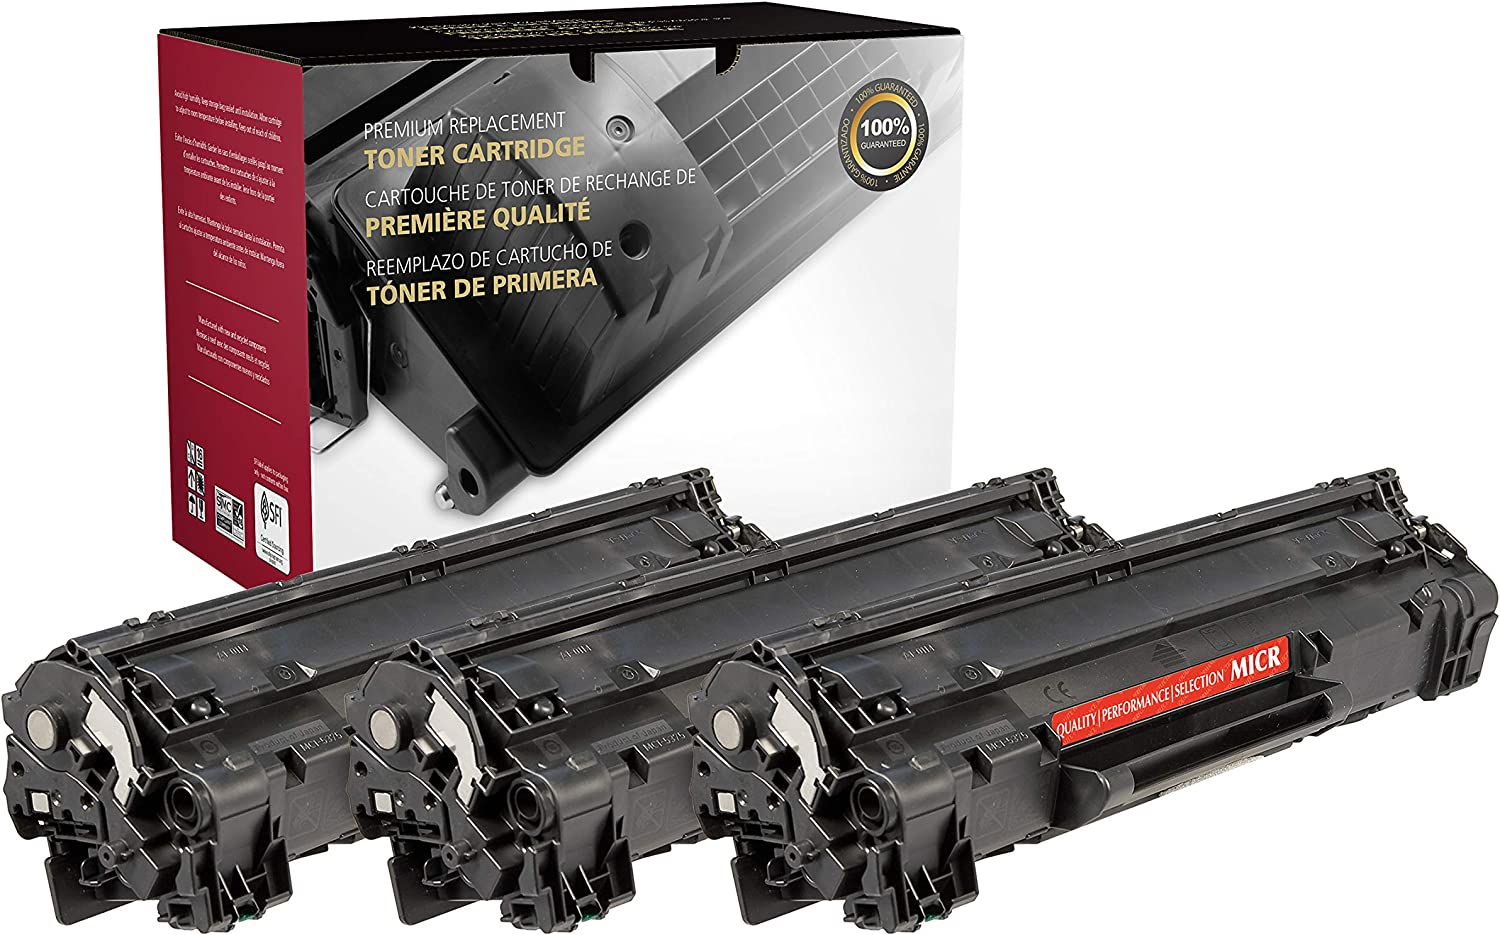 - 3 Pack Black Inksters Remanufactured Toner Cartridge Replacement for HP CF283X MICR HP 83X 2.2K Pages - High Yield